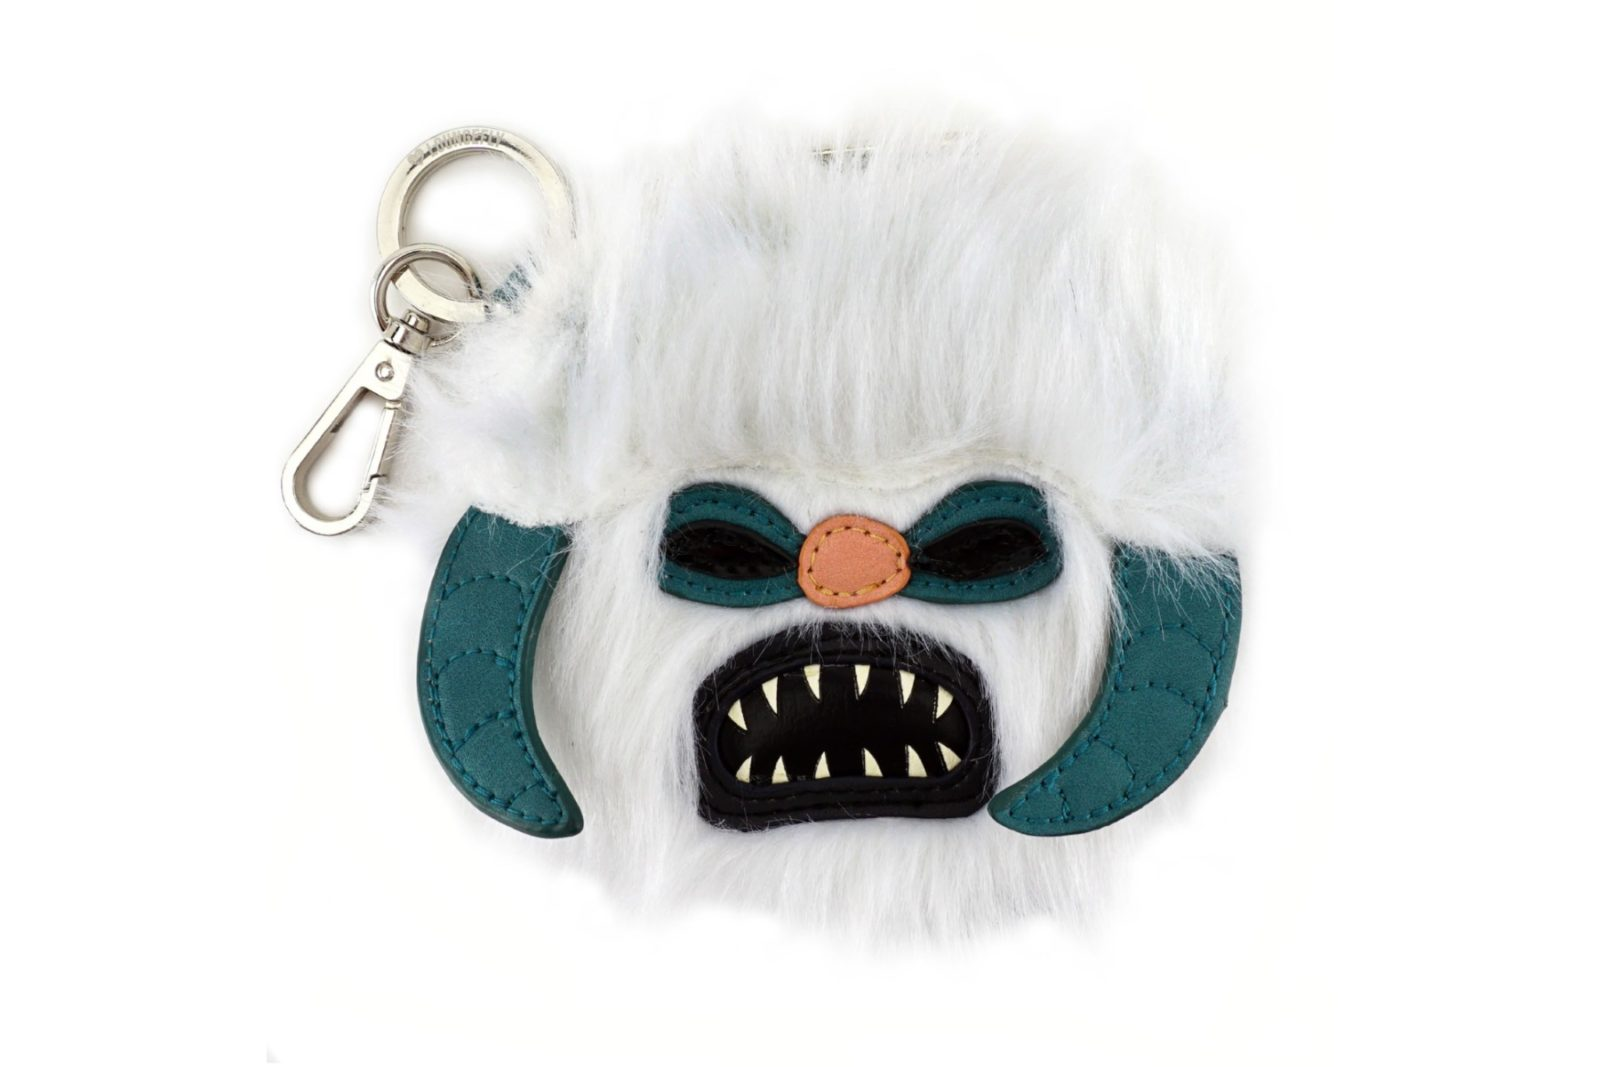 New Loungefly x Star Wars Wampa Coin Purse